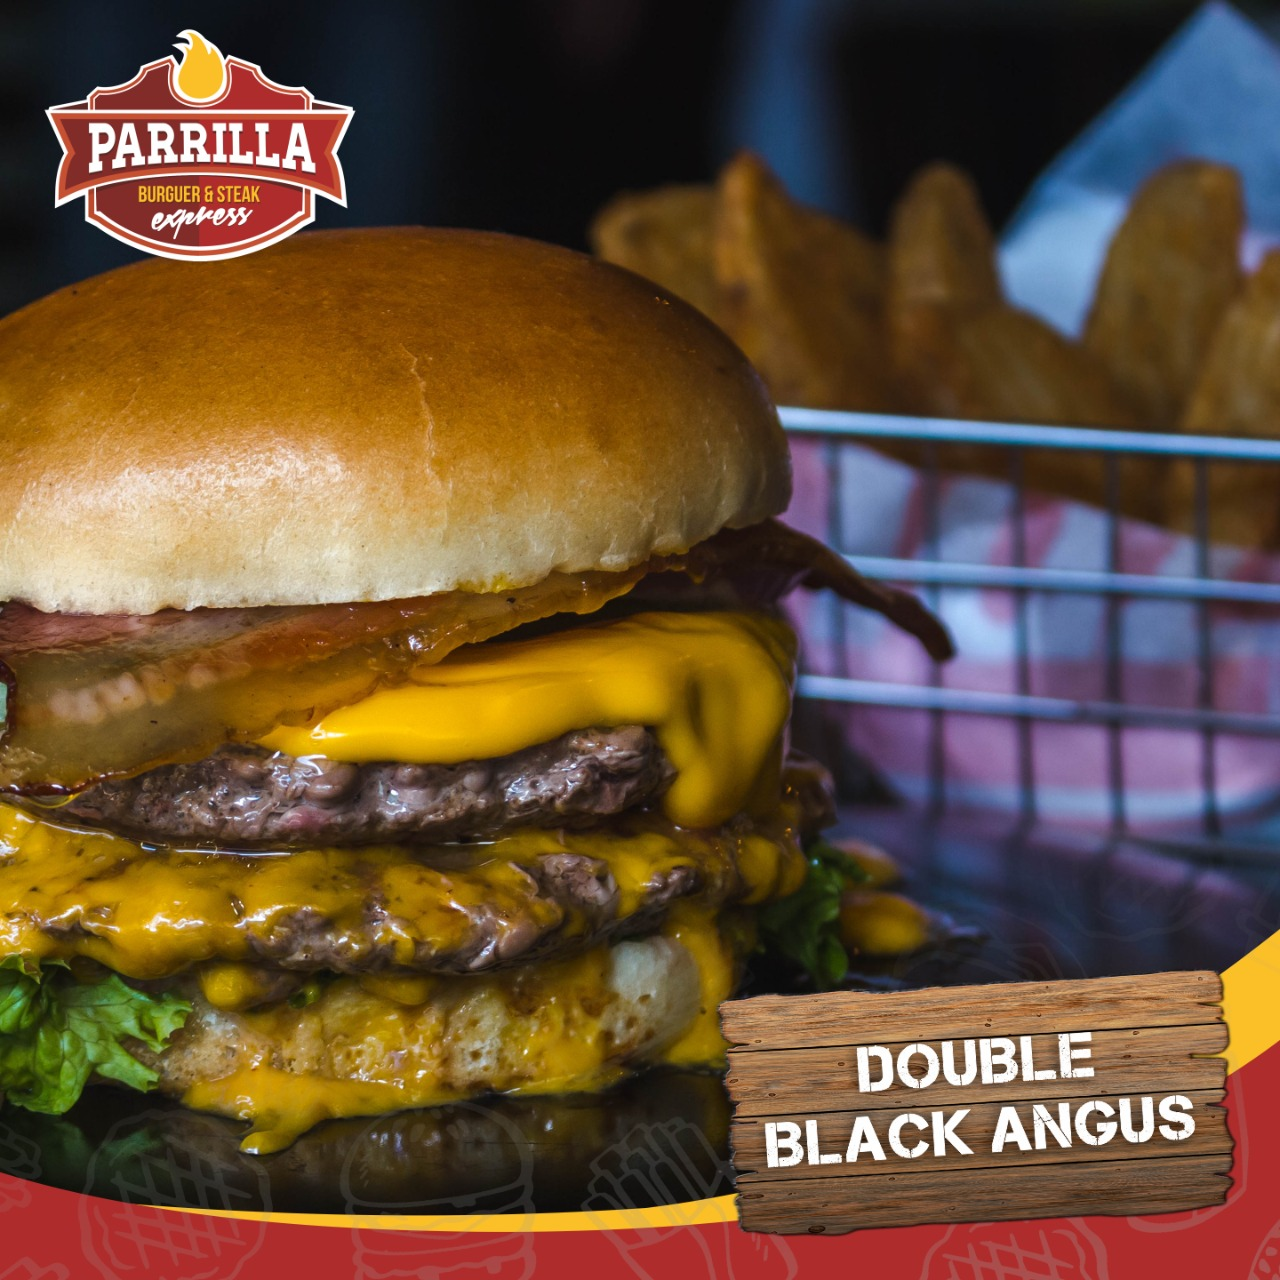 Hamburguesa doble black angus